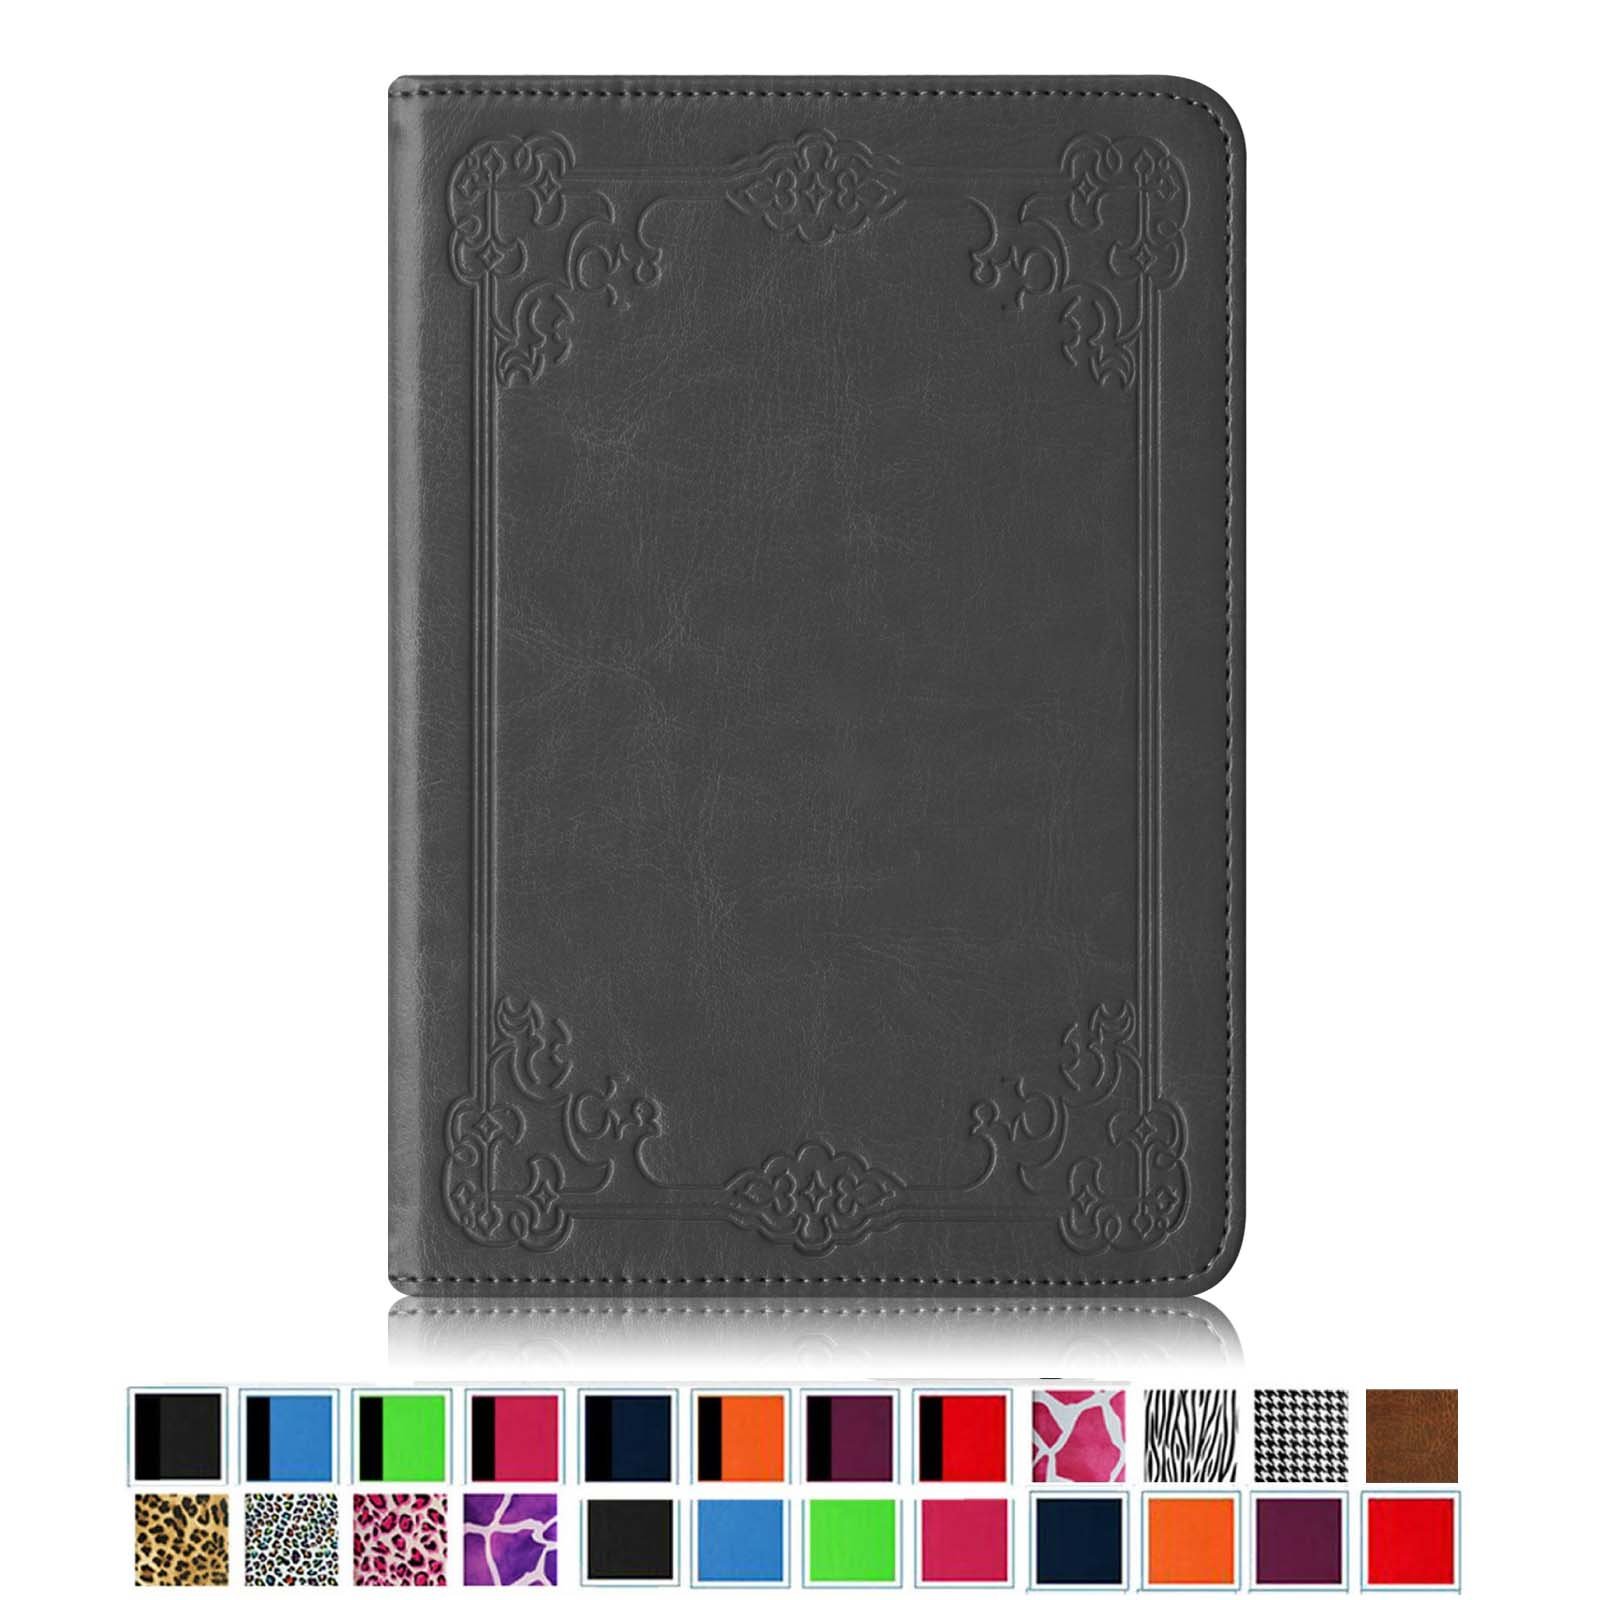 Fintie Case for Amazon Kindle Paperwhite - The Book Style PU Leather Folio Cover with Auto Sleep/Wake